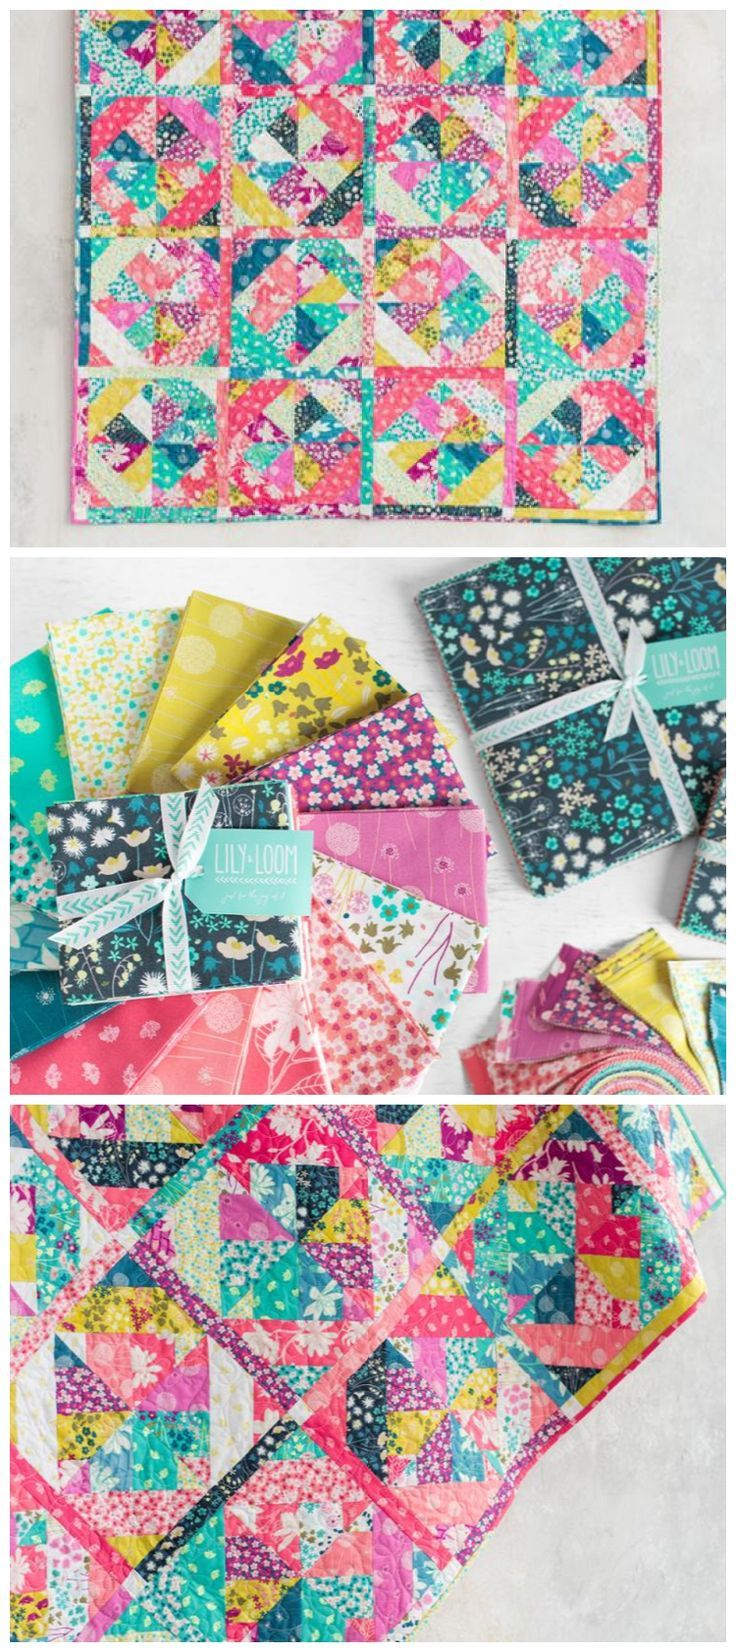 1866 best creative pinboard images on Pinterest | Anniversary favors ...